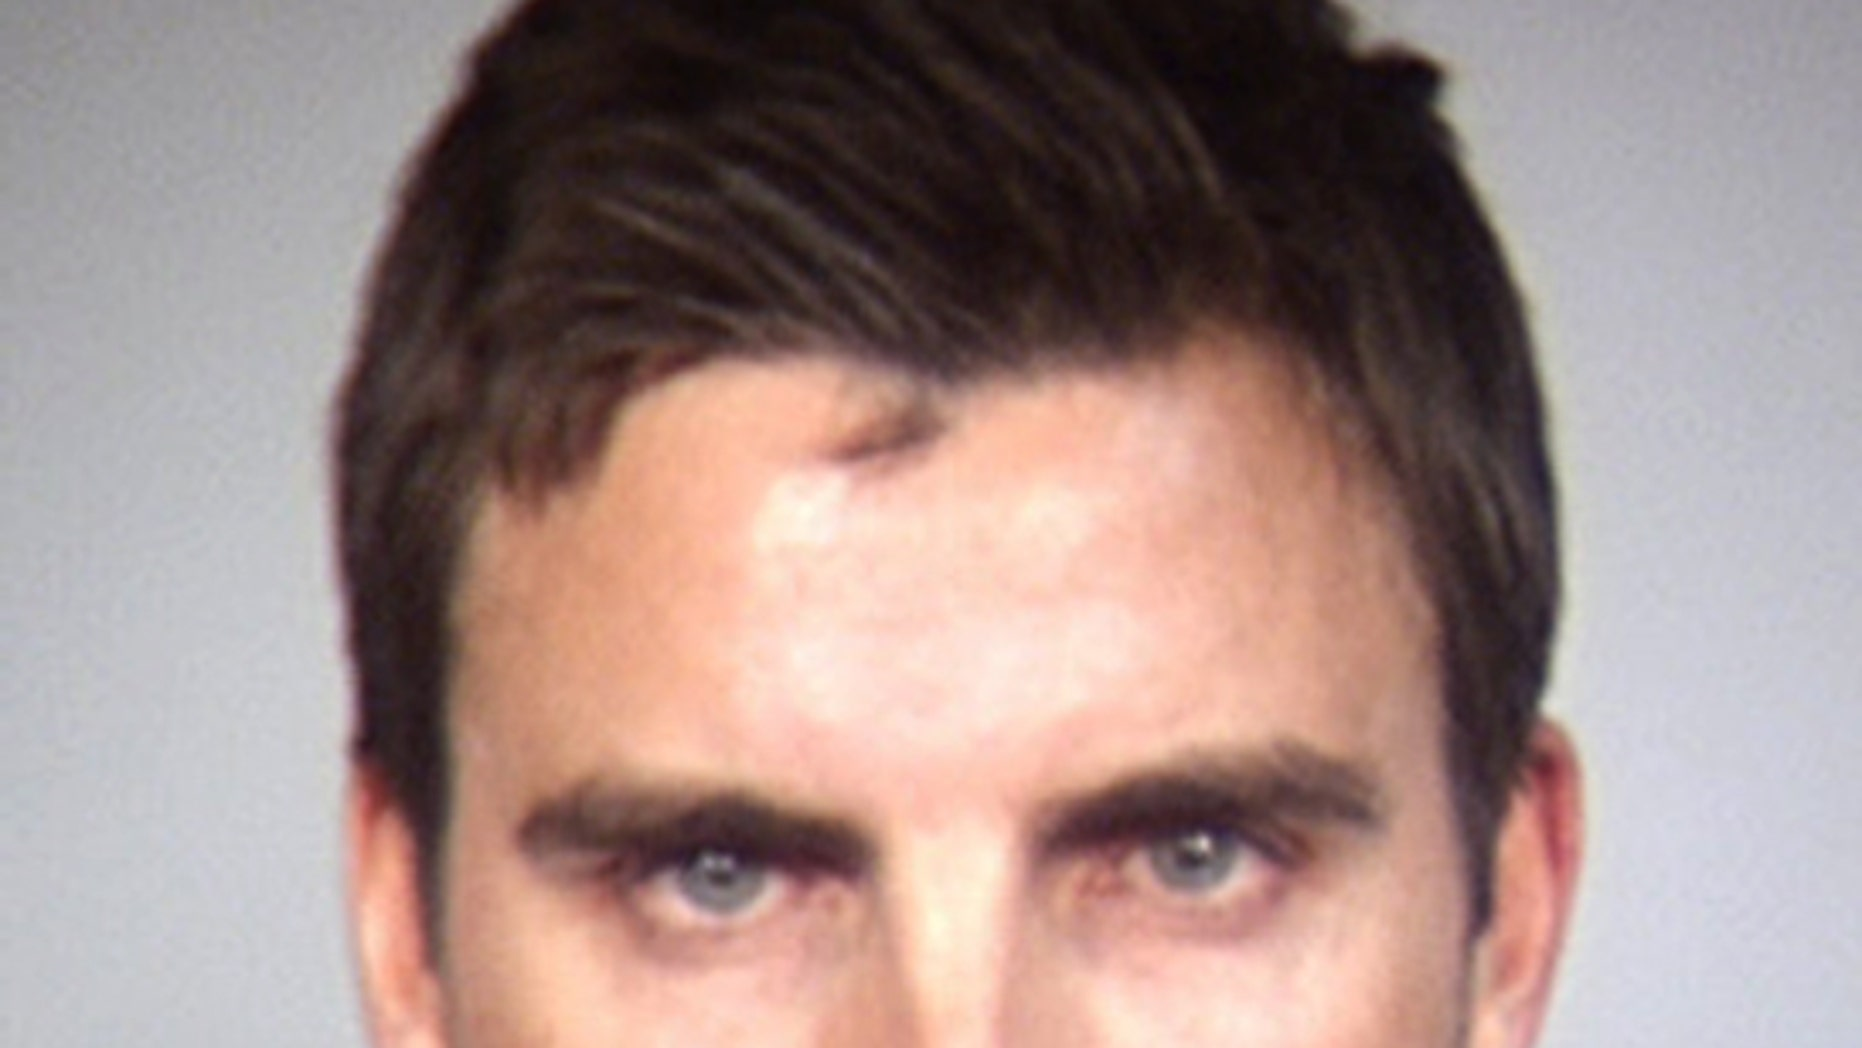 In this Tempe Police Department booking photo released Wednesday, April 2, 2014, shows Colin Egglesfield in Tempe, Ariz.